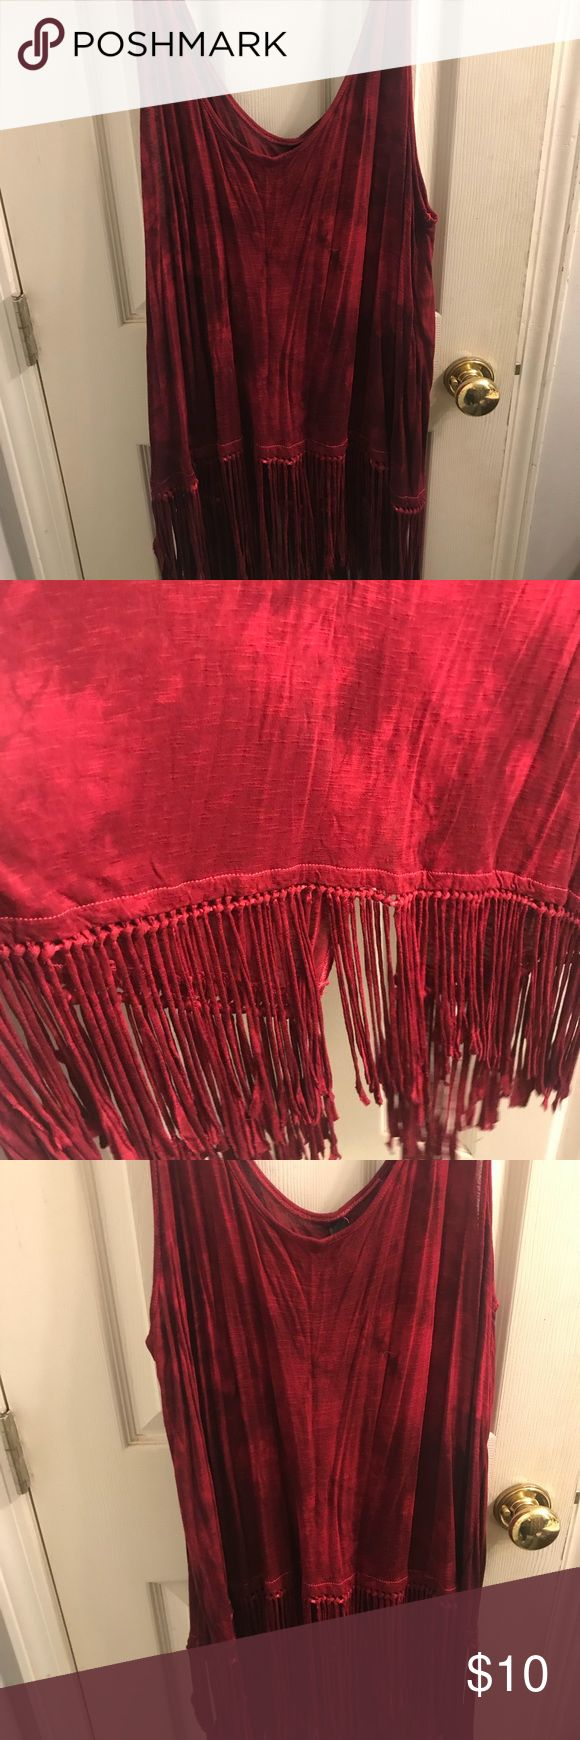 red tie dye fringe tank top never worn red/burgundy tie dye fringe at bottom of top splits in the back Jessica Simpson Tops Tank Tops